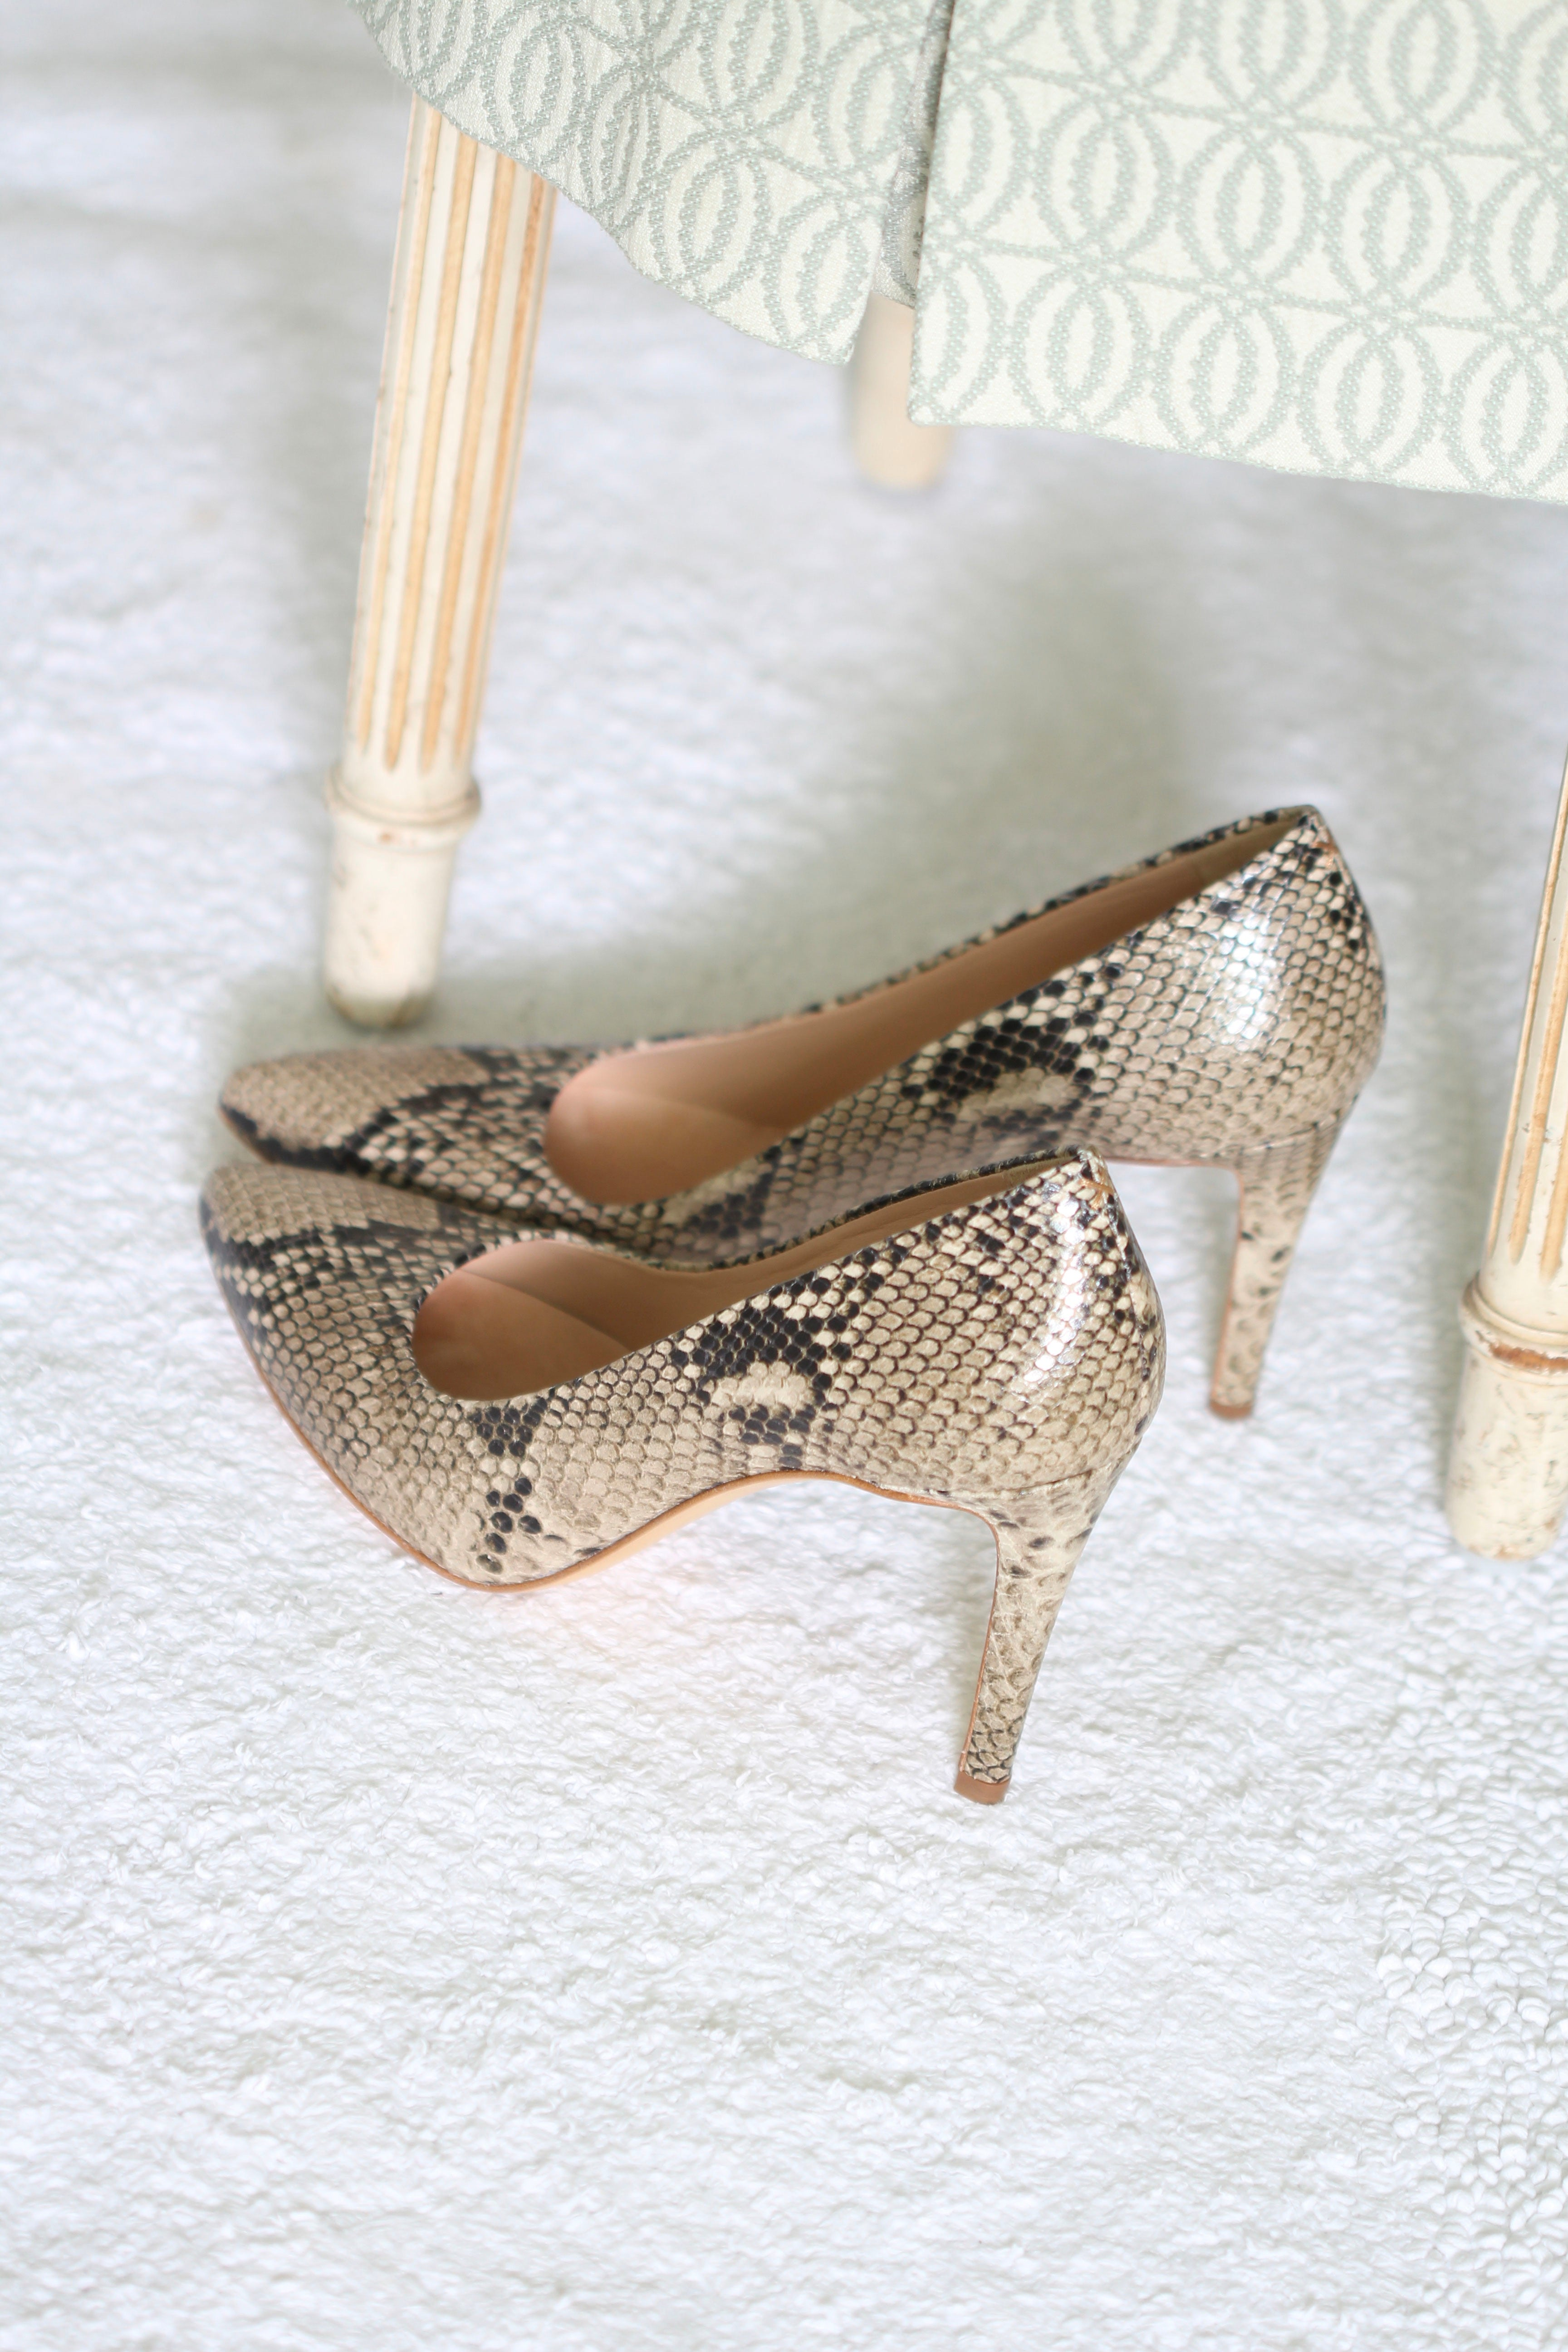 The Alta is one shoe that your feet will thank you for buying! Not to mention, they are so chic and your friends will want in on the secret when they see that you are standing, dancing, walking all night in a stunning high heeled pump!